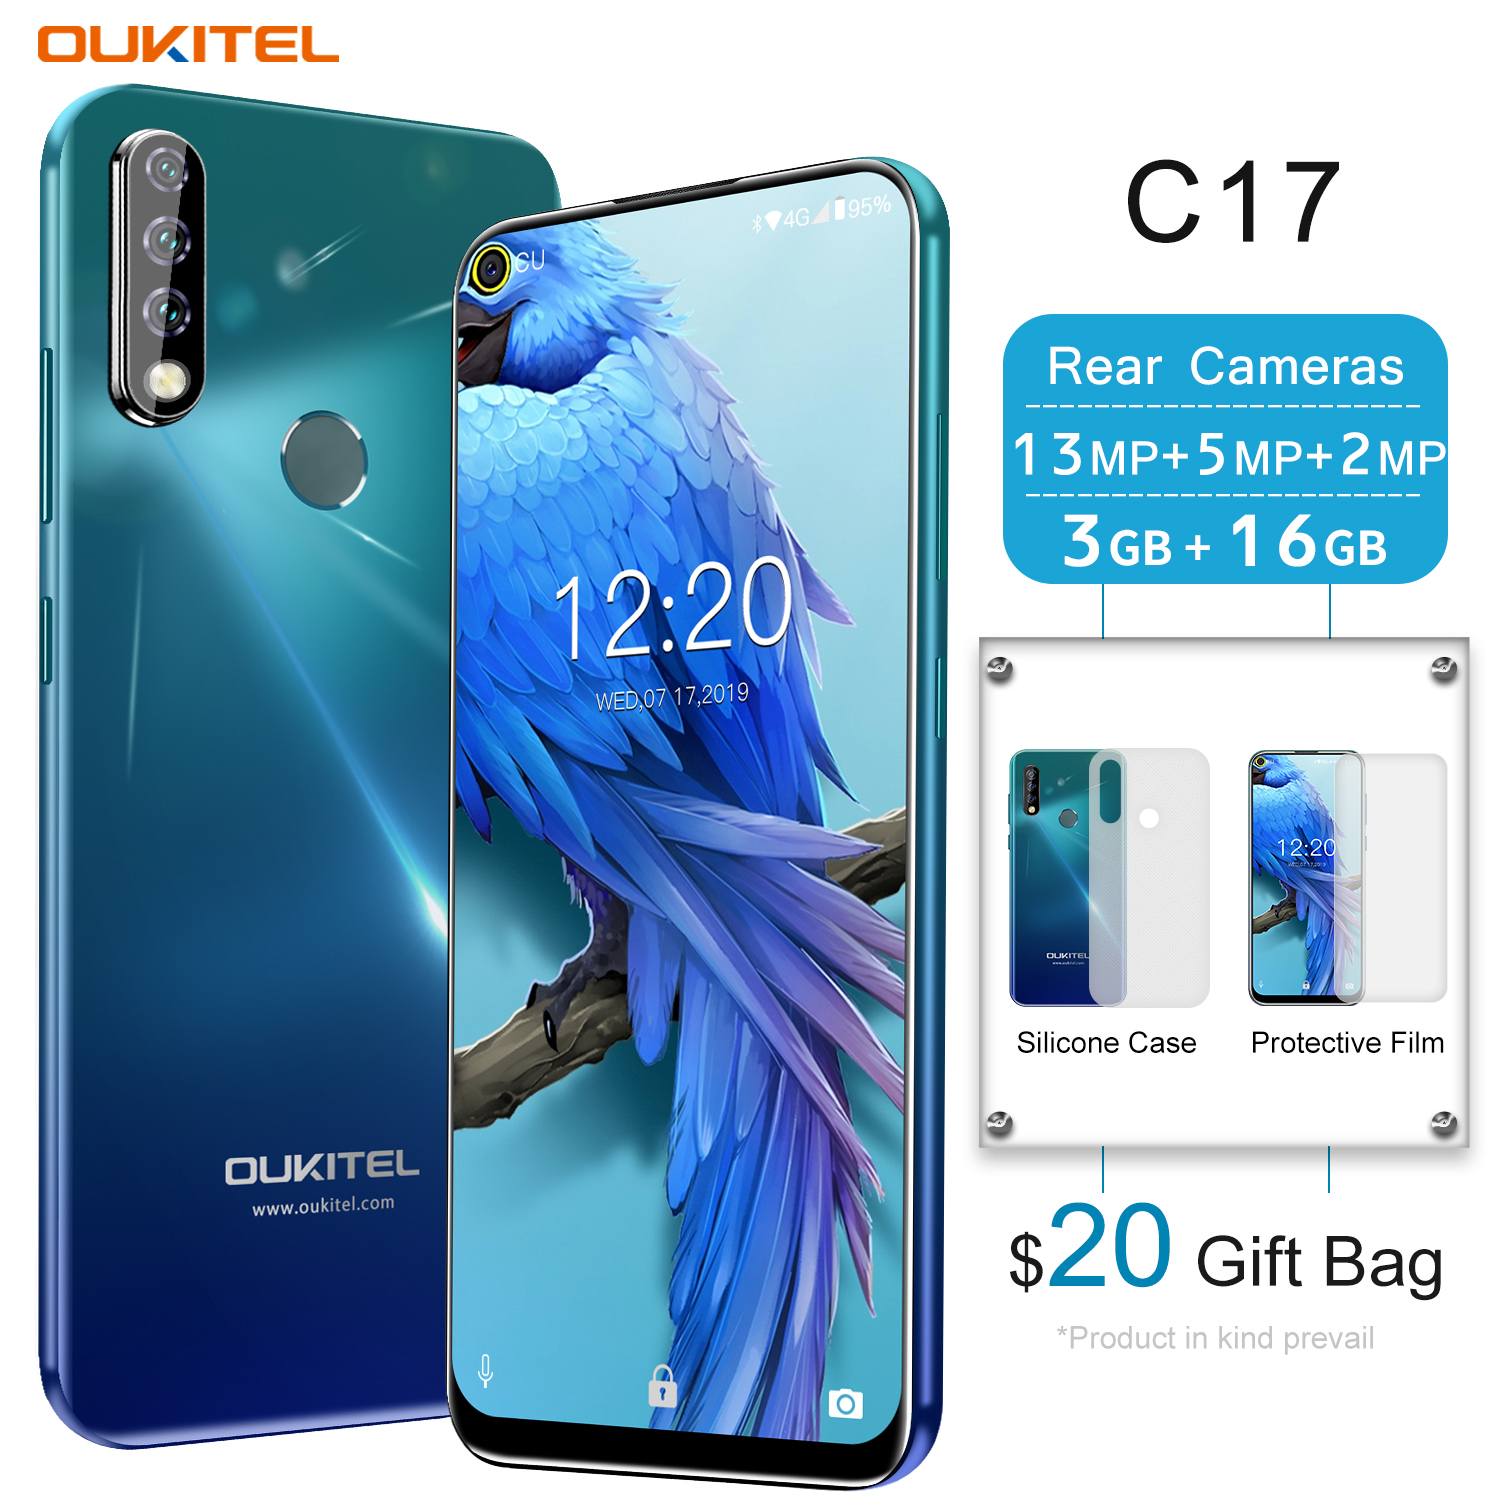 2019 Original OUKITEL C17 Smartphone Face ID 6.35''FHD 3GB RAM 16GB ROM Android 9.0 MTK6763 Octa Core 13MP 4G LTE Mobile Phone